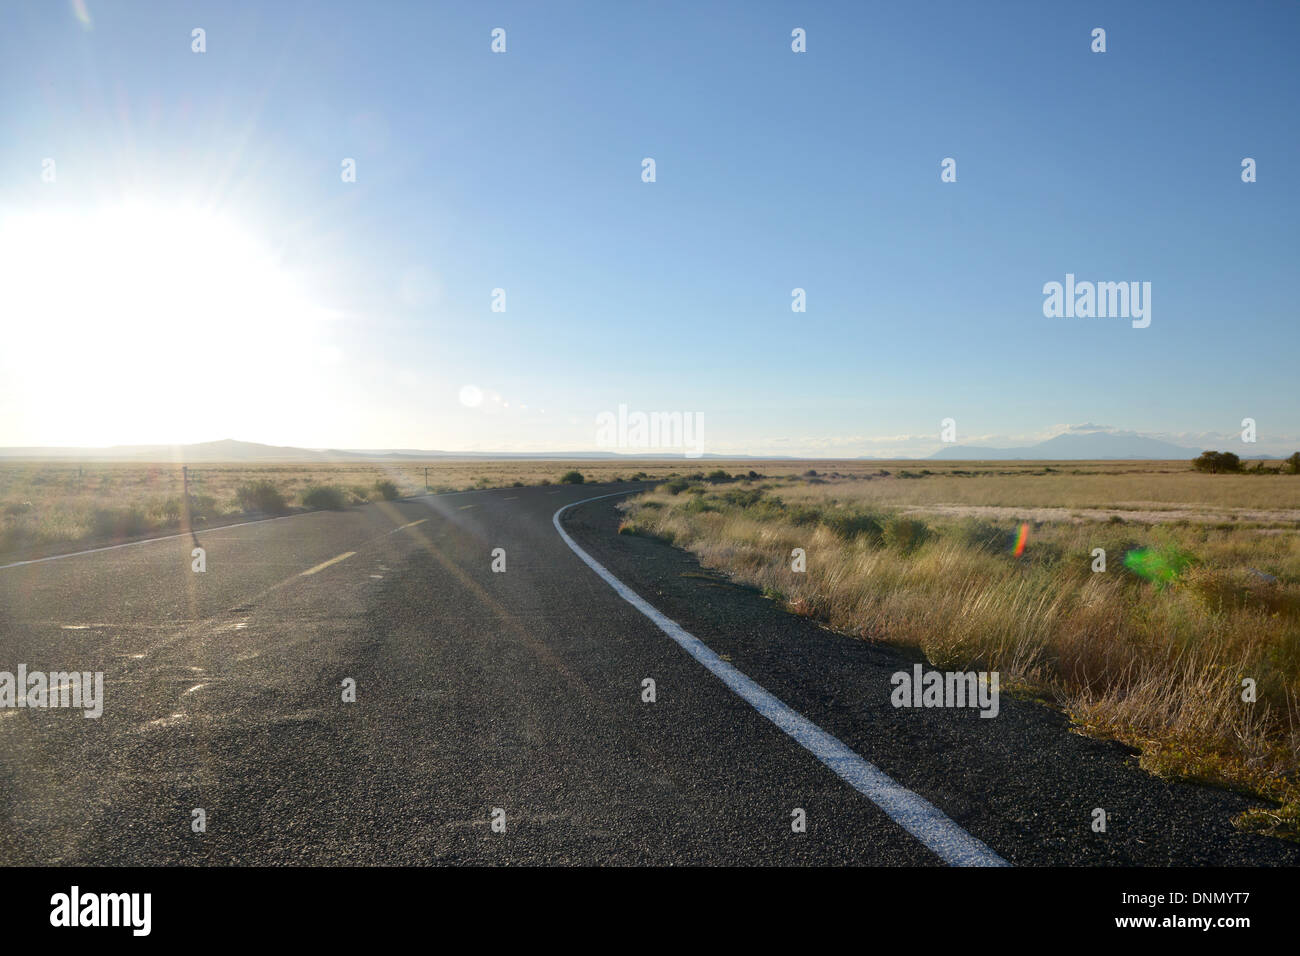 Low sun over desert road bend, Arizona, USA. Route 66 background - Stock Image